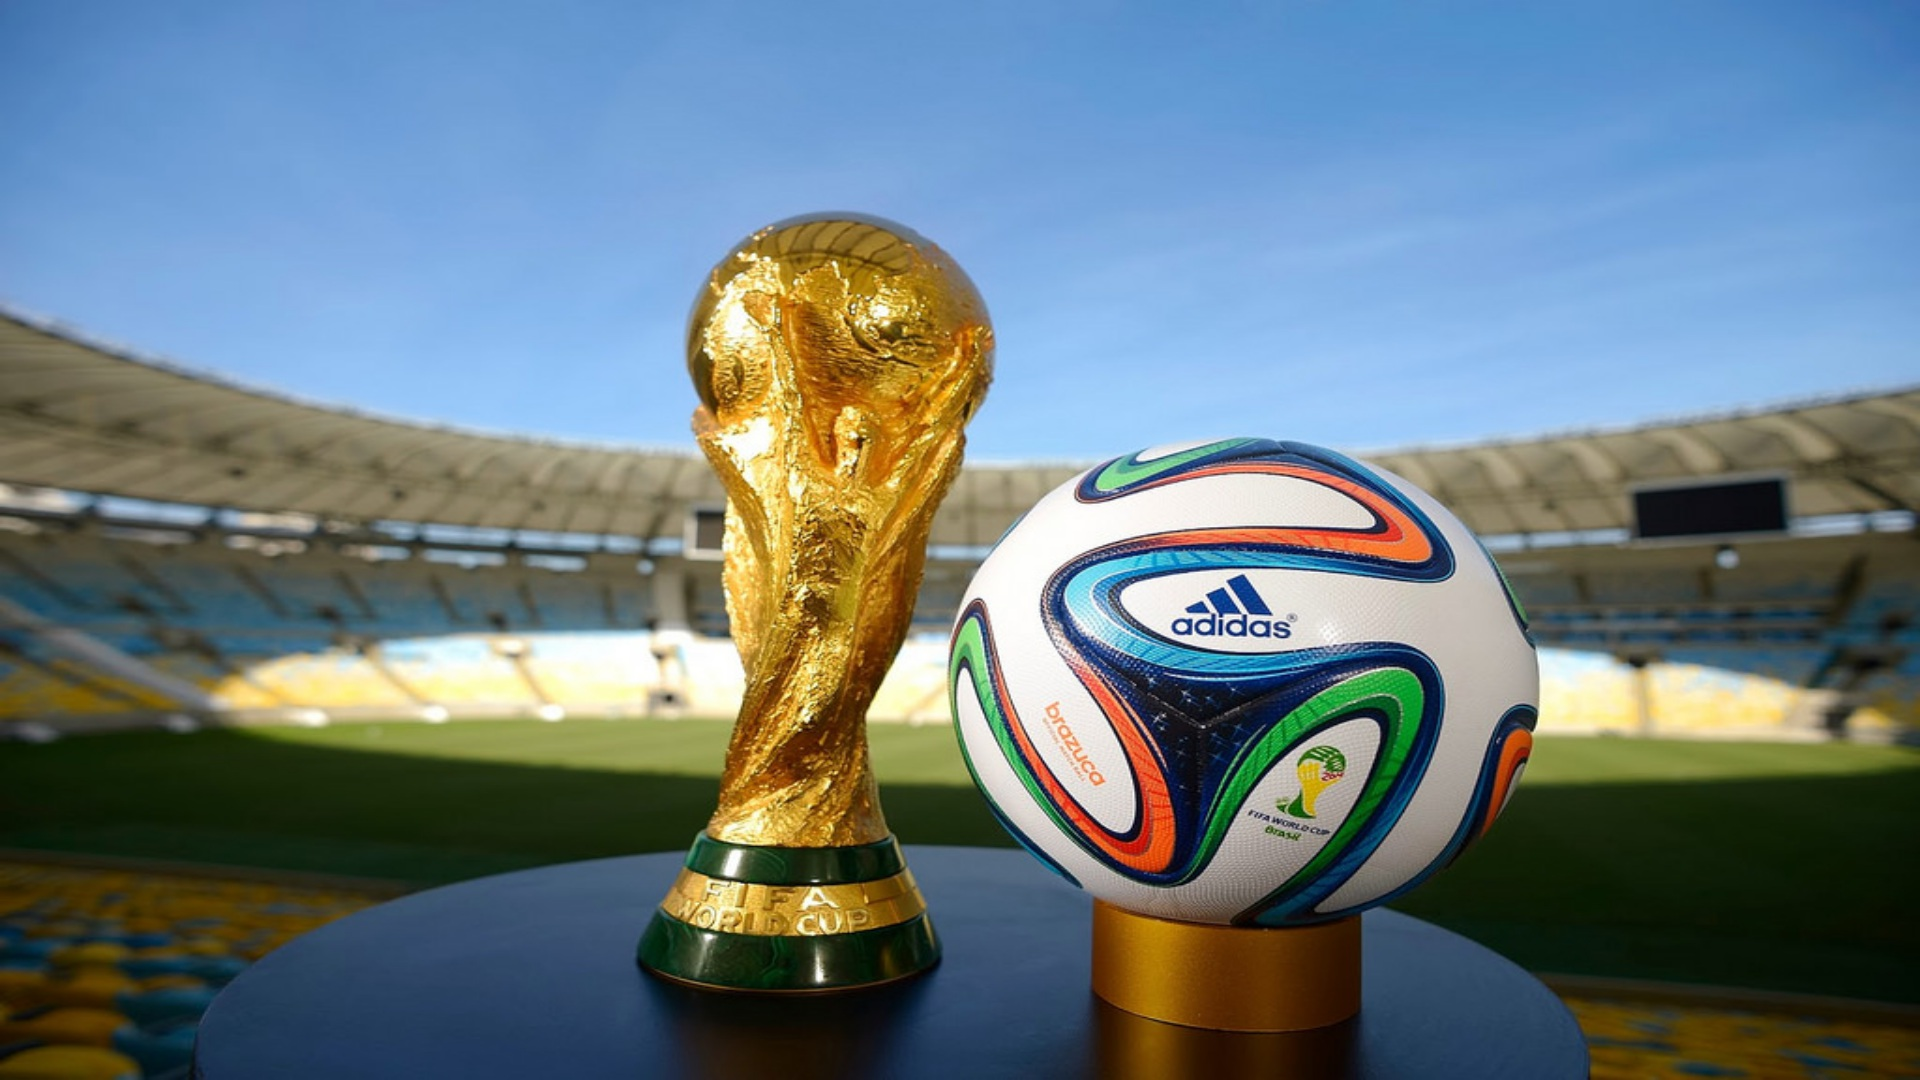 Brazuca Official Soccer Ball World Cup 2014 3D Model .max